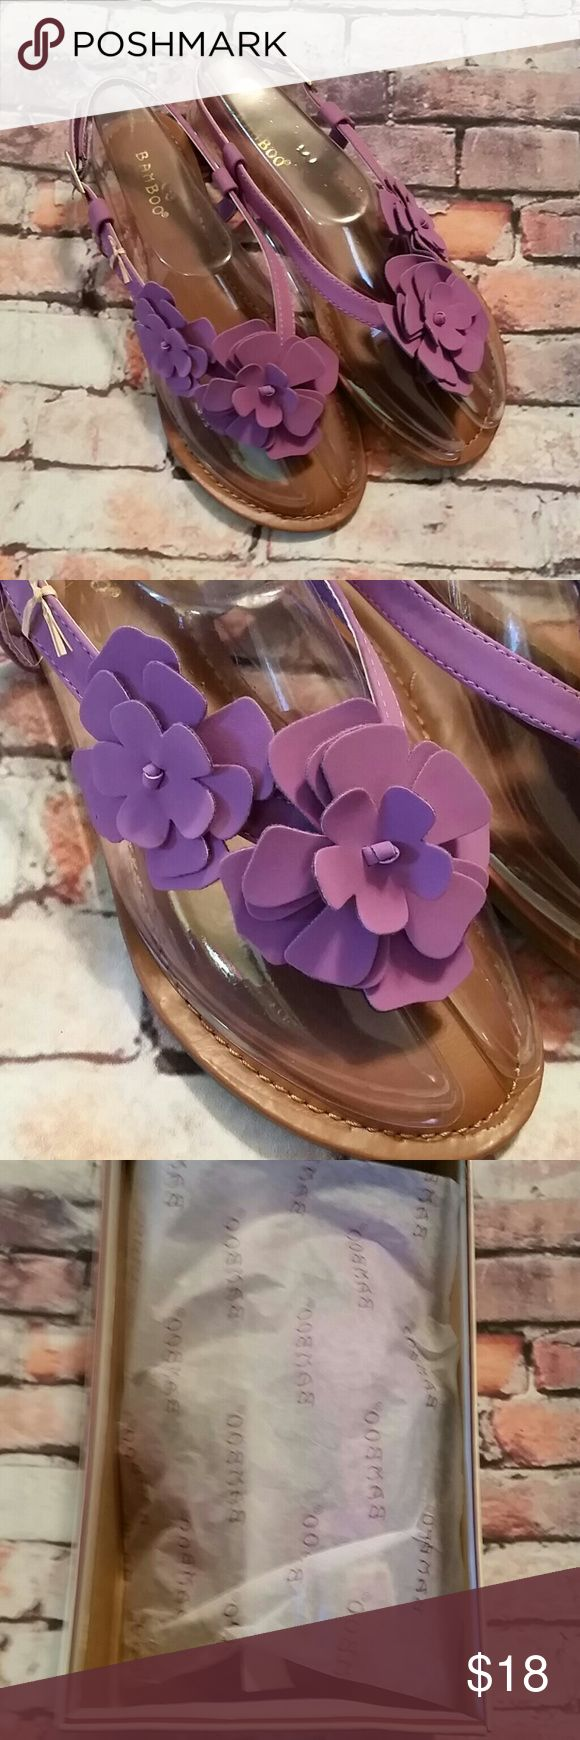 New BAMBOO Purple Sandals 8 Brand new, in box.  Bamboo purple sandals.  Flirty flowers! Bamboo  Shoes Sandals